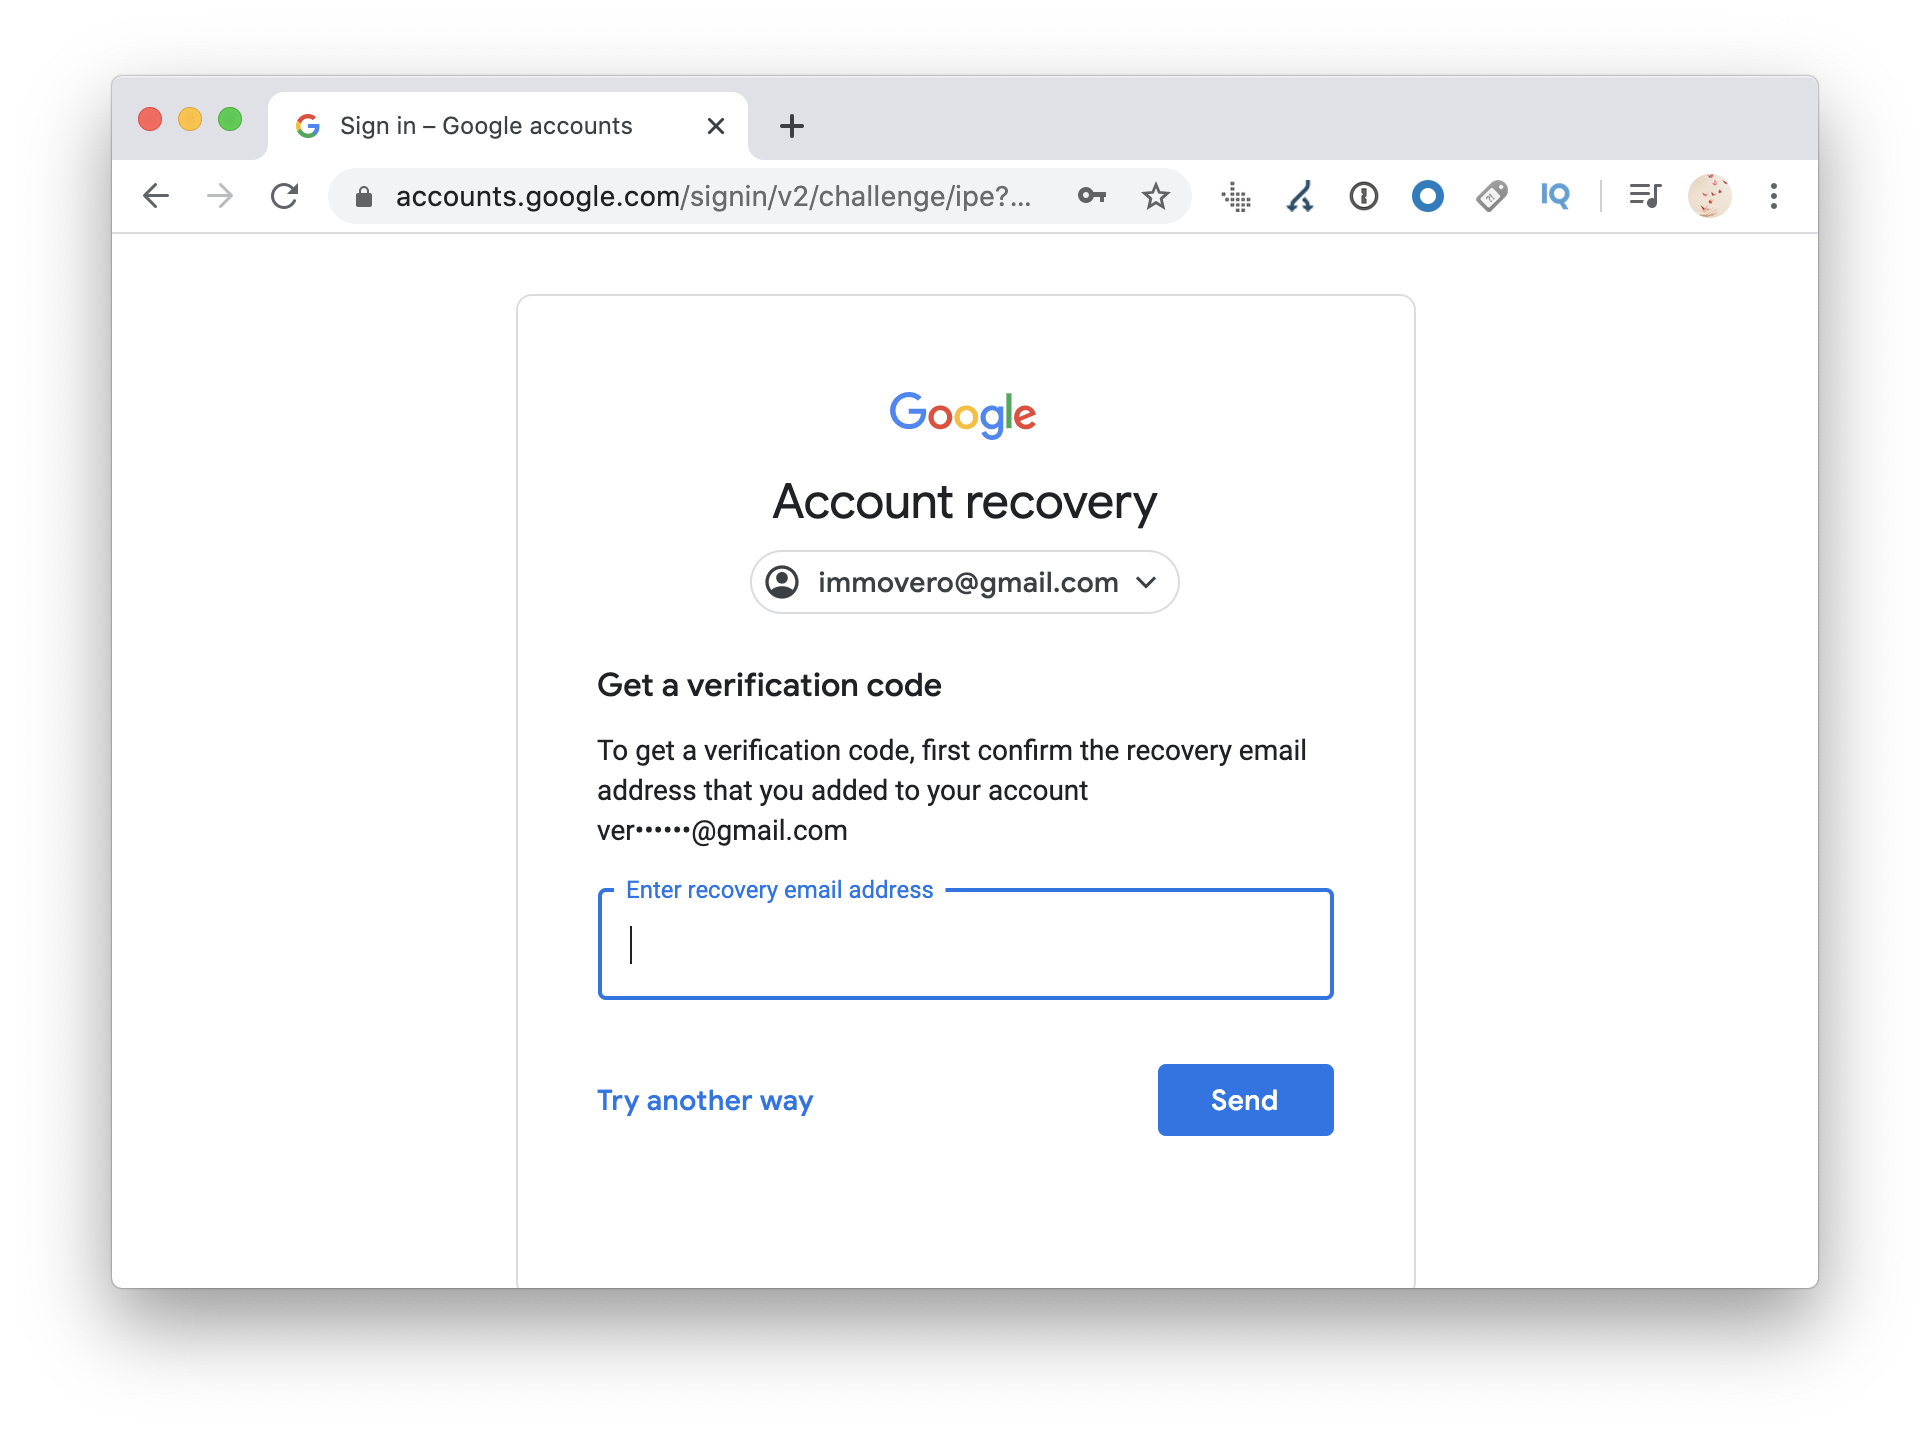 Recover account with verification code